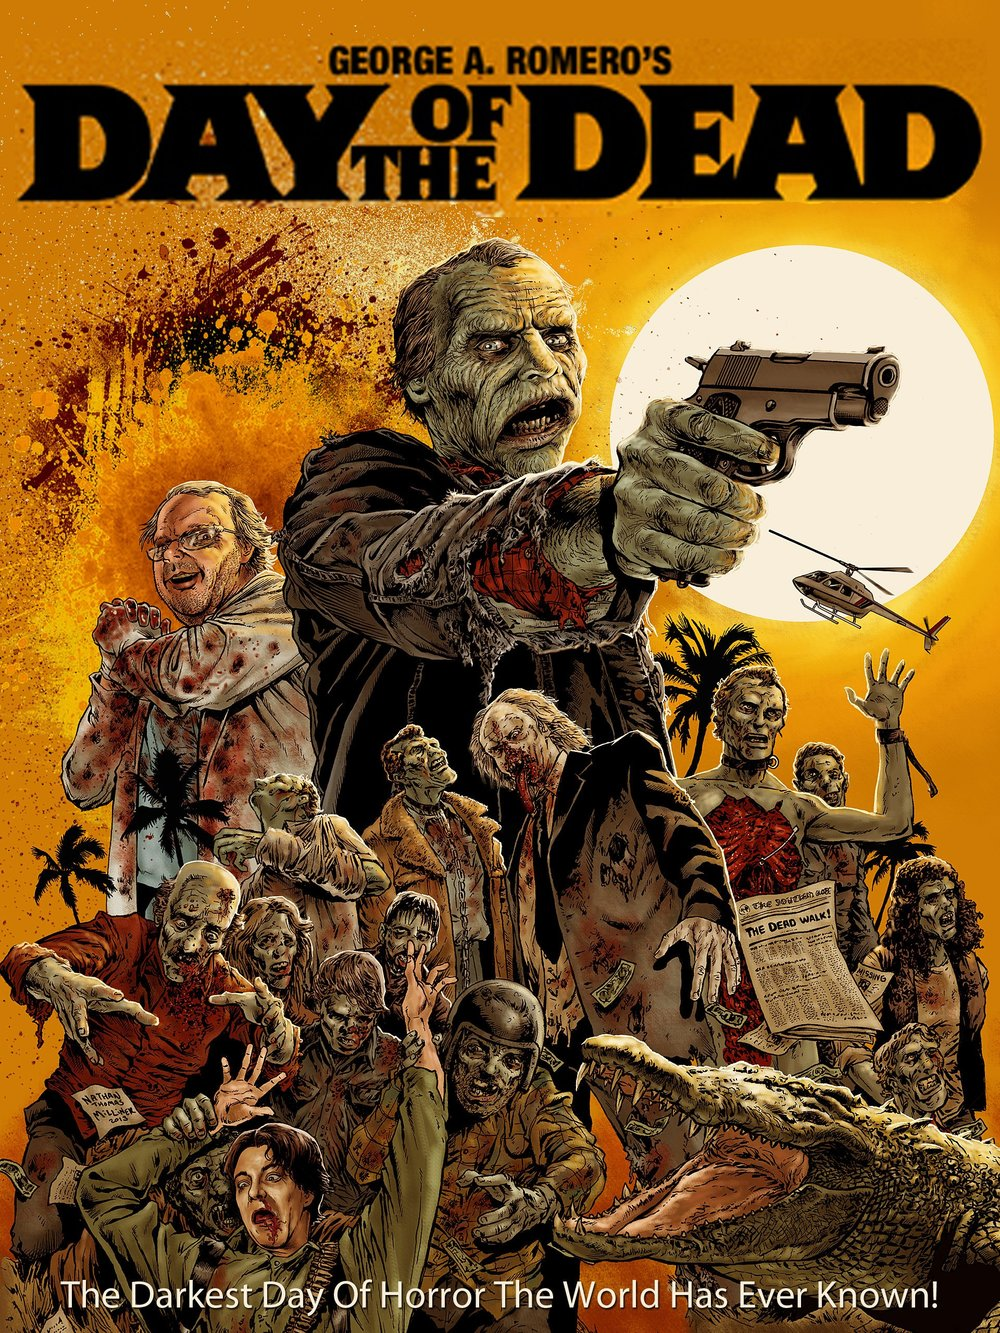 Day of the Dead (1985) - Directed by: George A RomeroStarring: Lori Cardille, Terry Alexander, Joseph PilatoRated: NR (Suggested R for Strong Brutal Graphic Violence and Pervasive Language)Running Time: 1 h 36 mTMM Score: 3.5 stars out of 5STRENGTHS: Effects, Story, Directing, Moral DilemmaWEAKNESSES: Acting, Some Dialogue